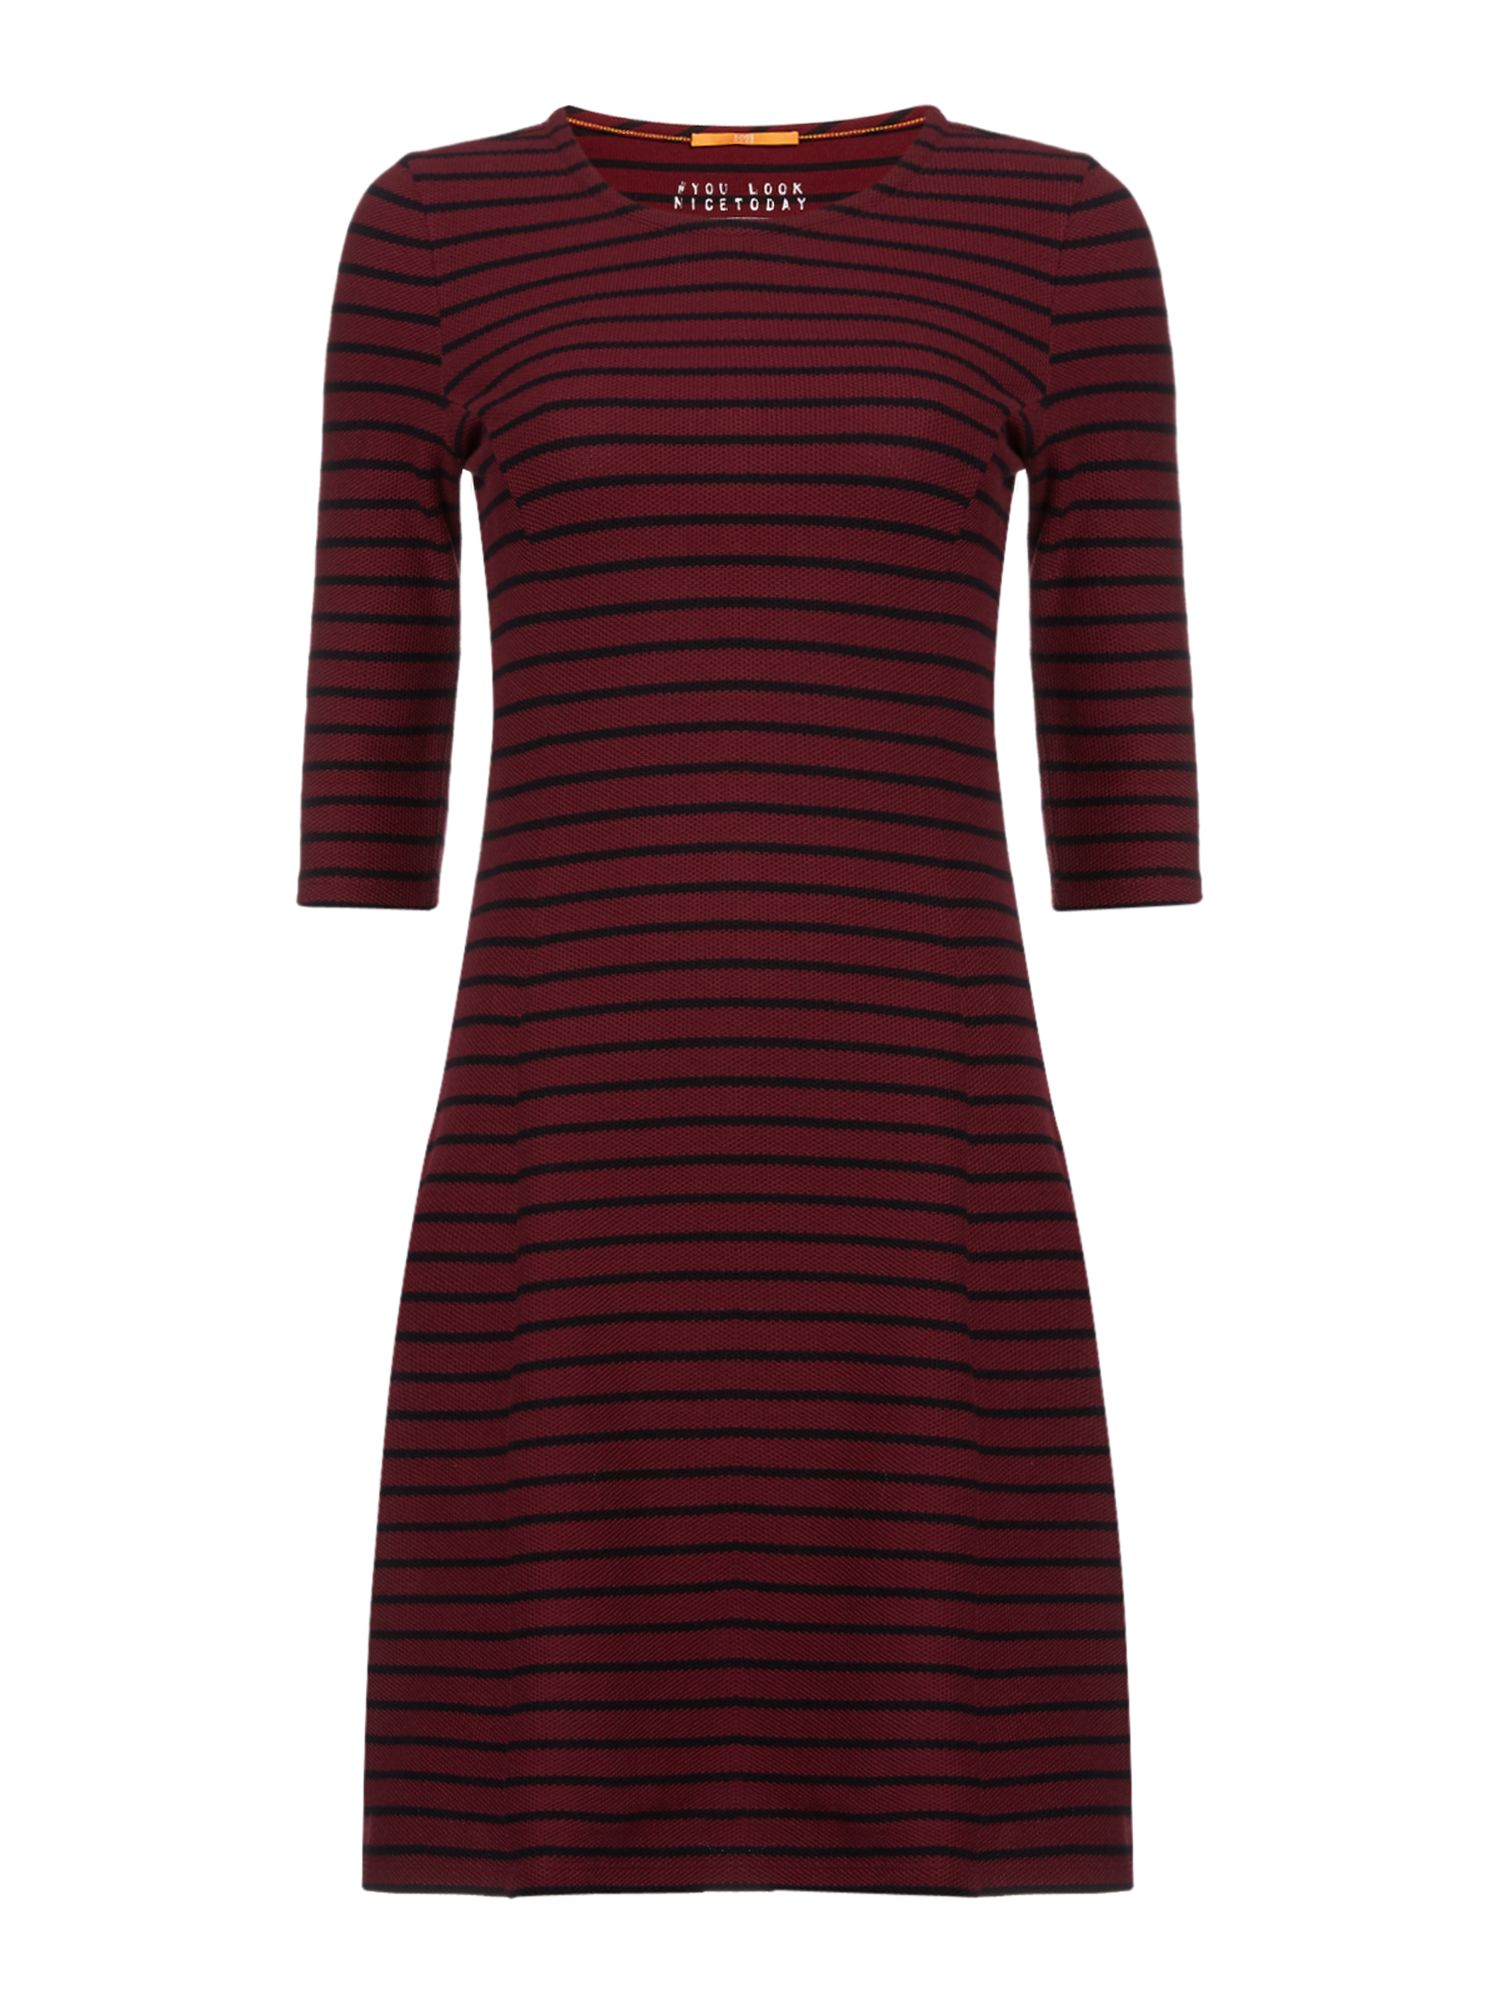 Hugo Boss Dressie 3/4 sleeve crew neck jersey dress, Red